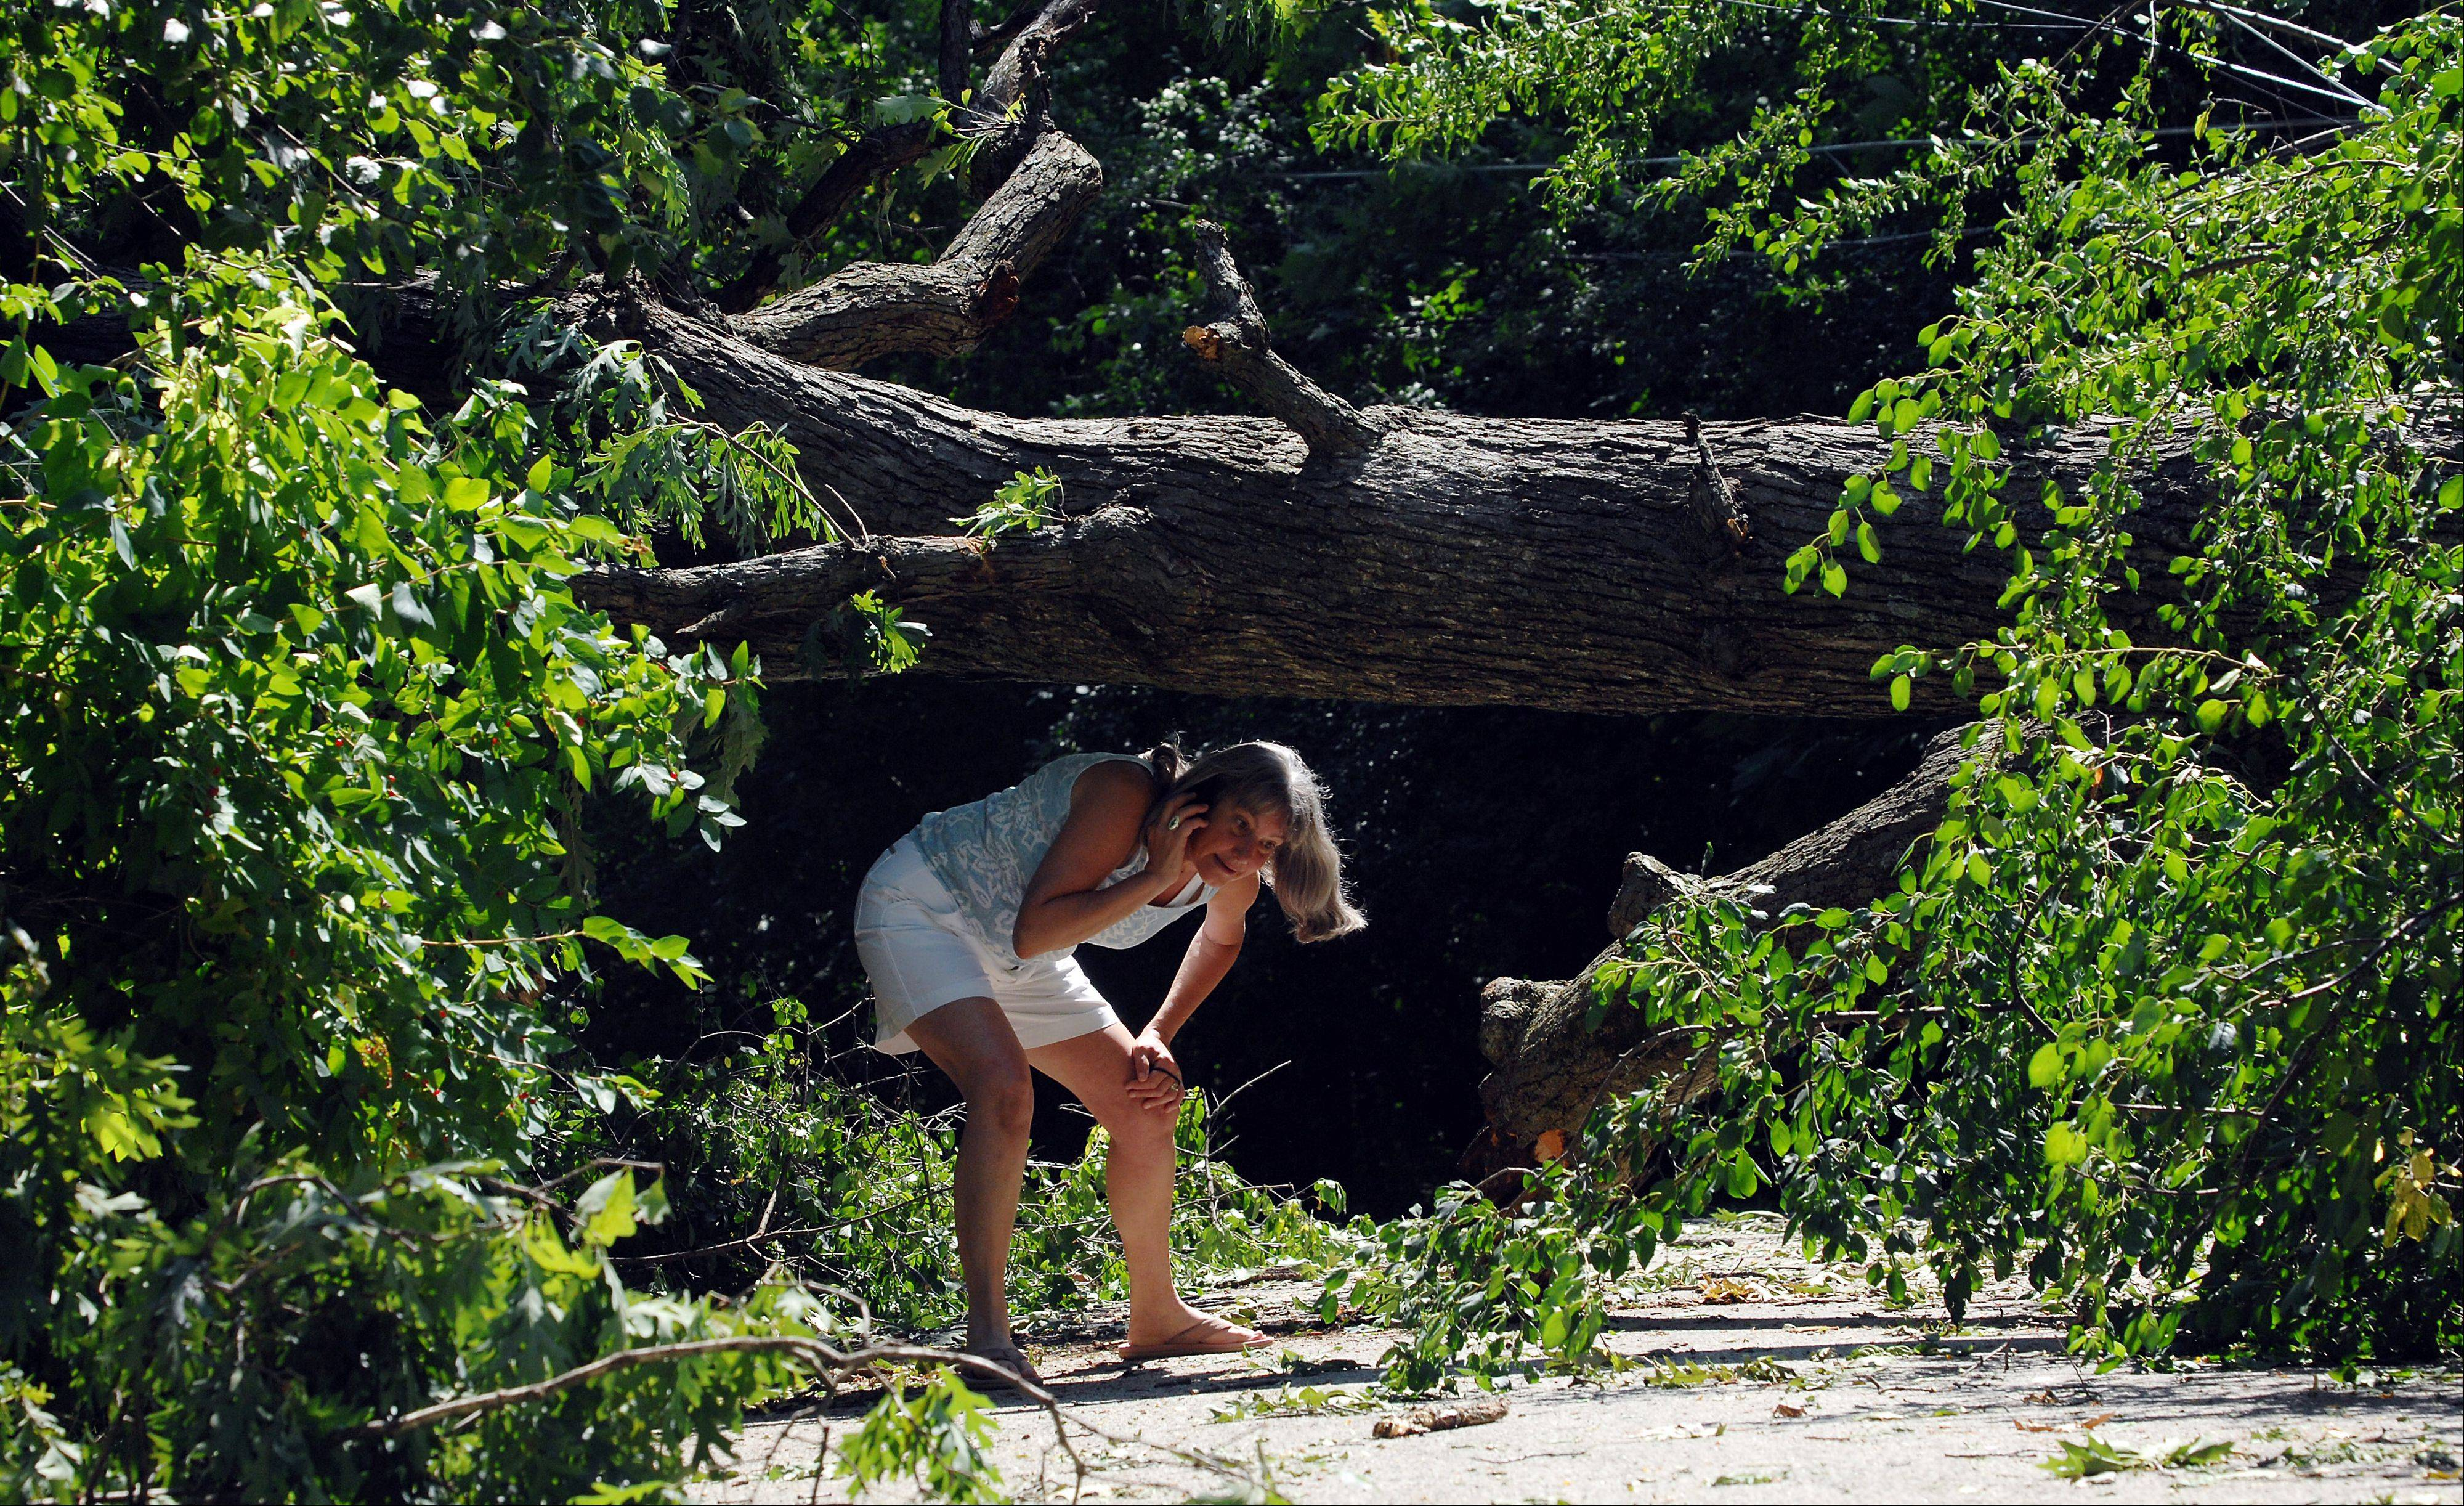 Wendy Schultz of Wisconsin who was helping out her Barrington parents Richard and Rosemary Libby who were hit hard by the storm ducks under a huge Oak tree which fell near their driveway taking out a transformer and leaving them without power for almost two days.